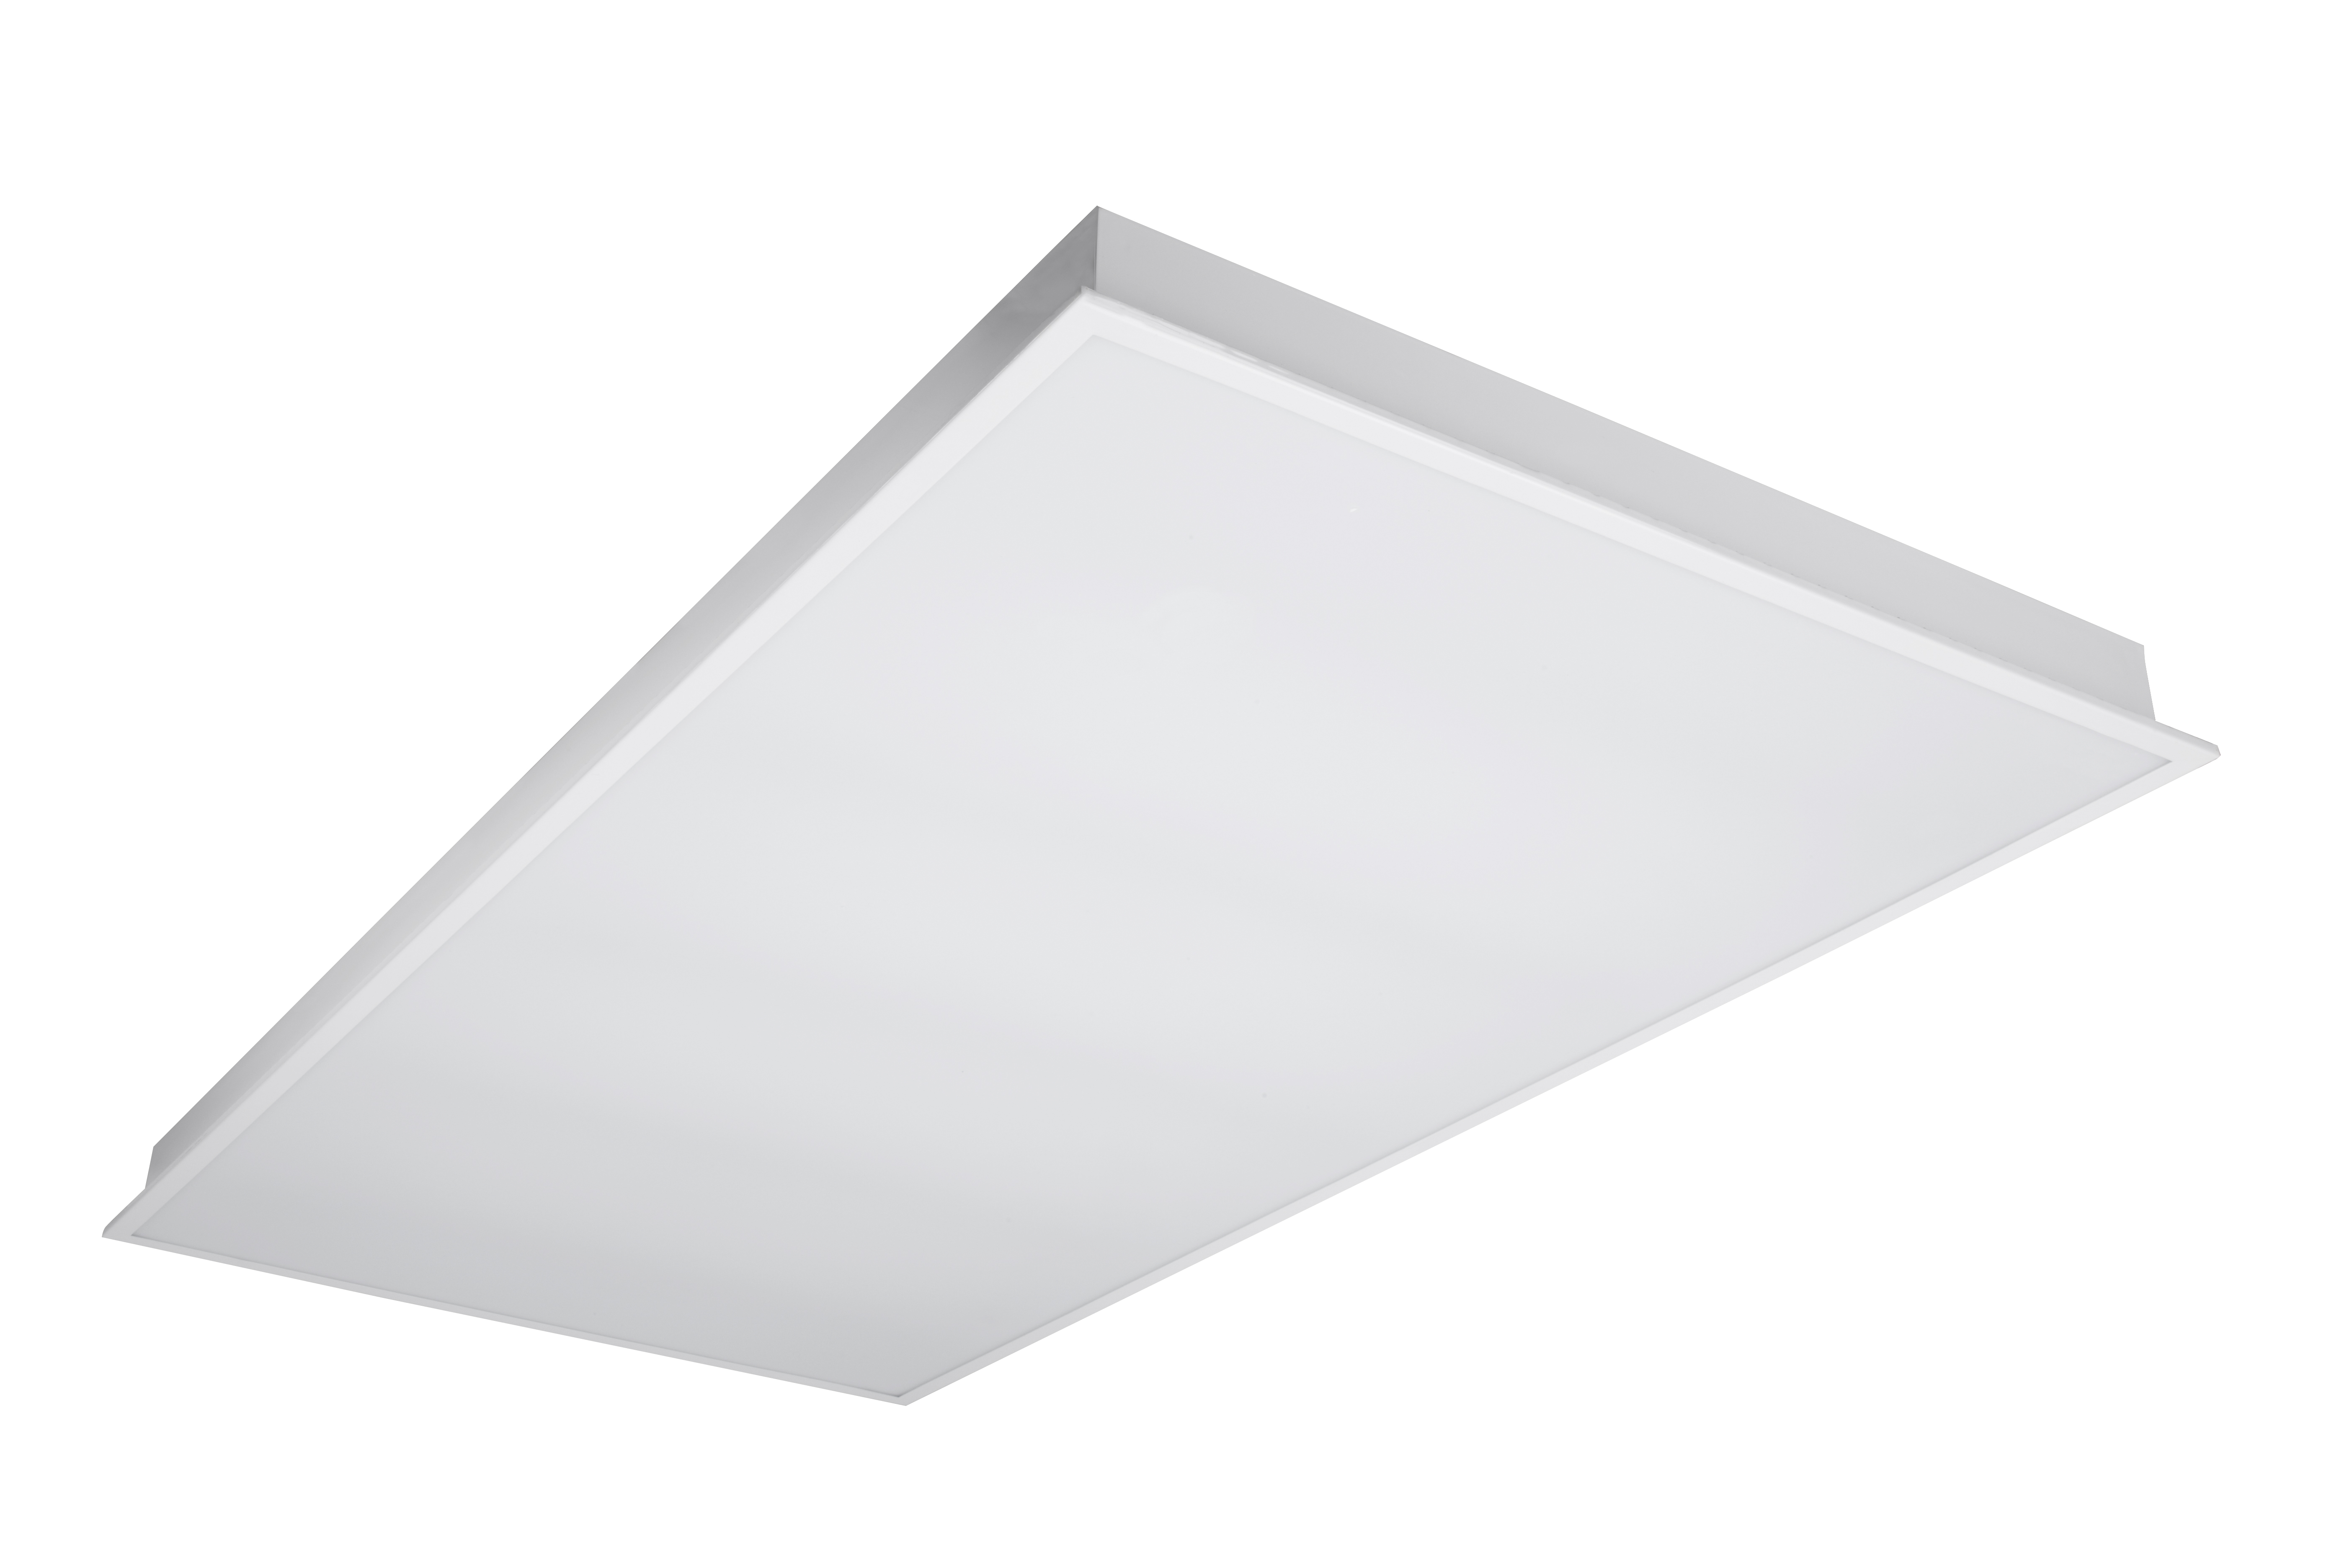 24FPL45/850/LED 81944 LED FLAT PANEL 2X4 45W 5000K 0-10V DIMMABLE